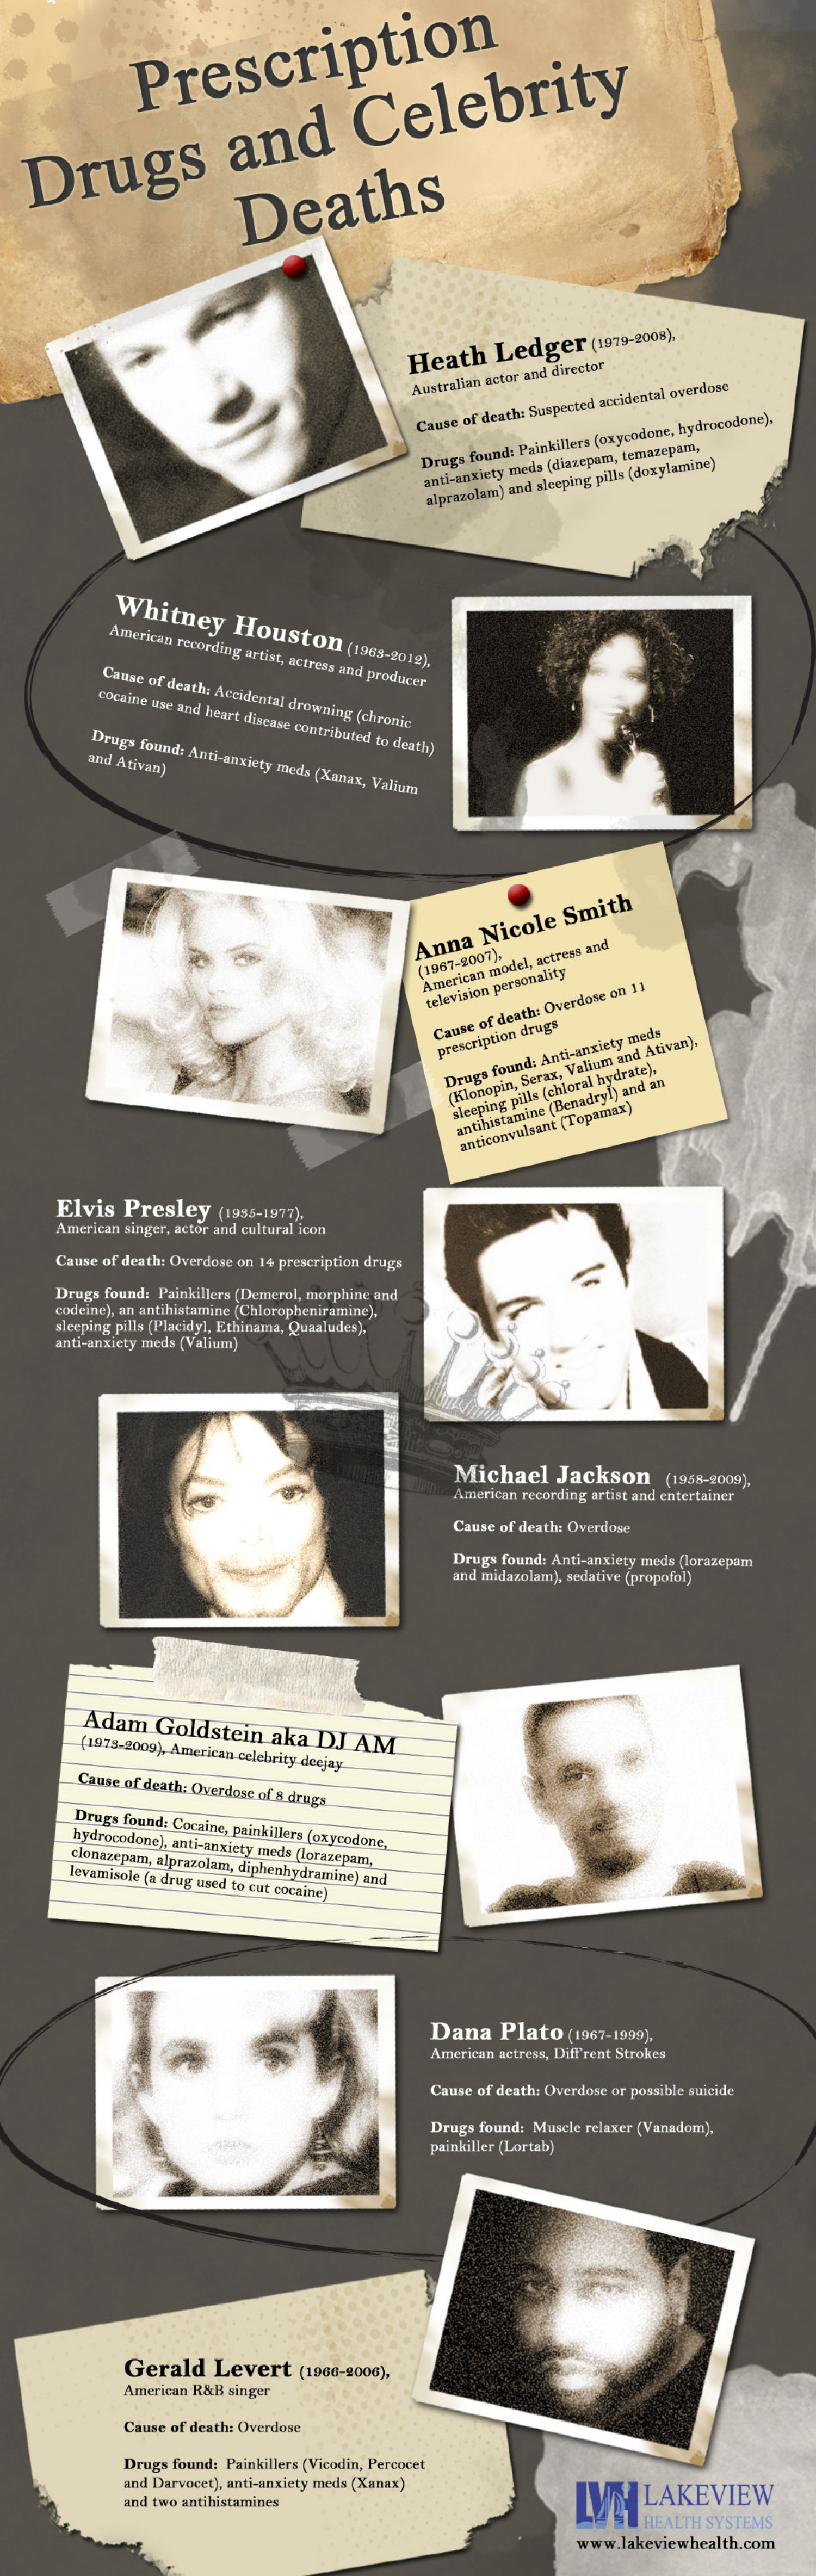 Celebrity Deaths by Prescription Drugs Infographic